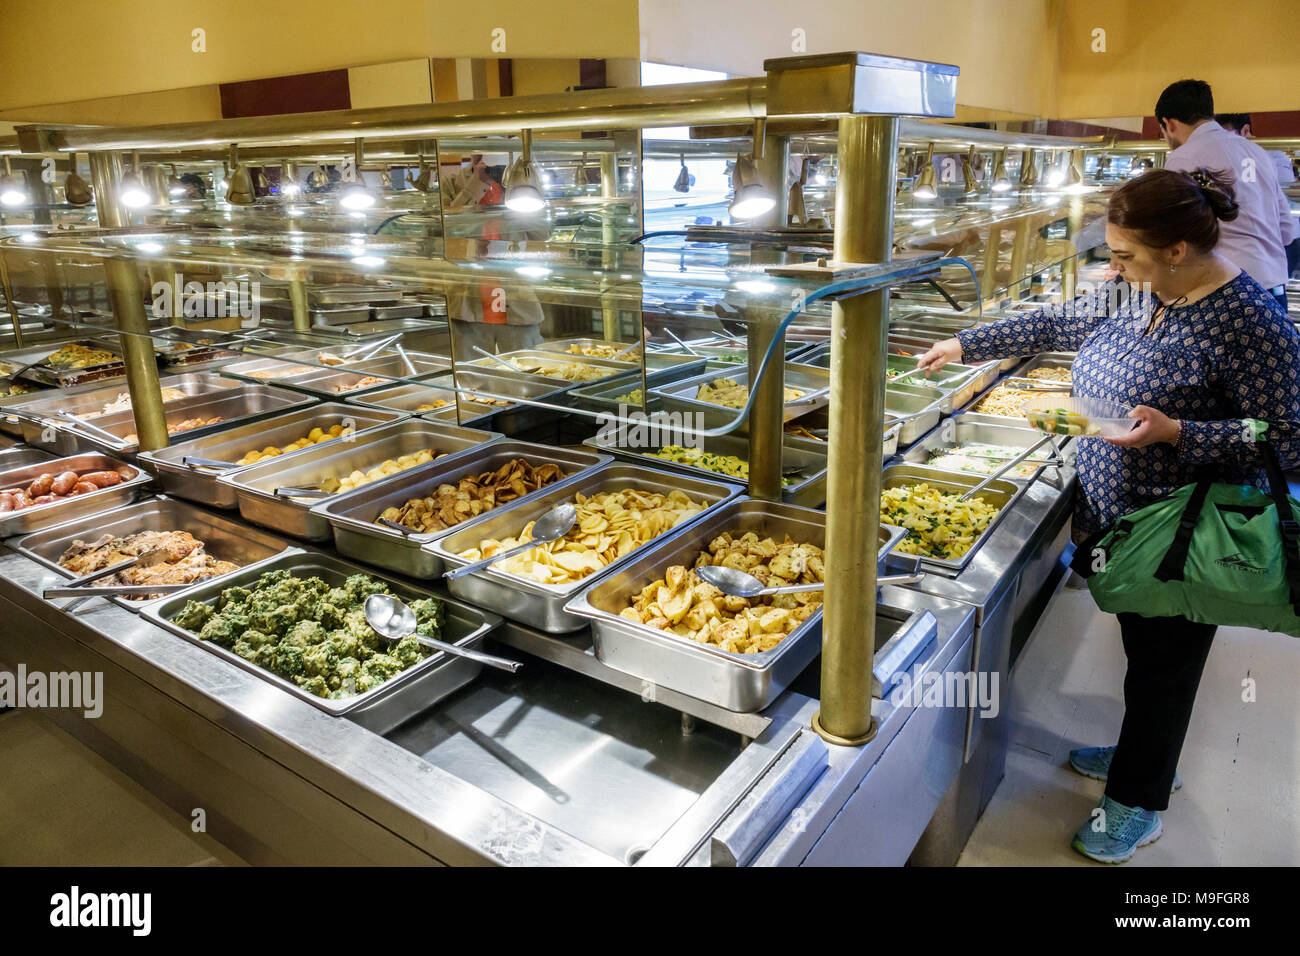 Buenos Aires Argentina Microcentro Restaurant Pekin Comida de China restaurant interior Asian food buffet self-serve chafing trays sneeze guard food safety woman Hispanic Argentinean Argentinian Argentine South America American - Stock Image